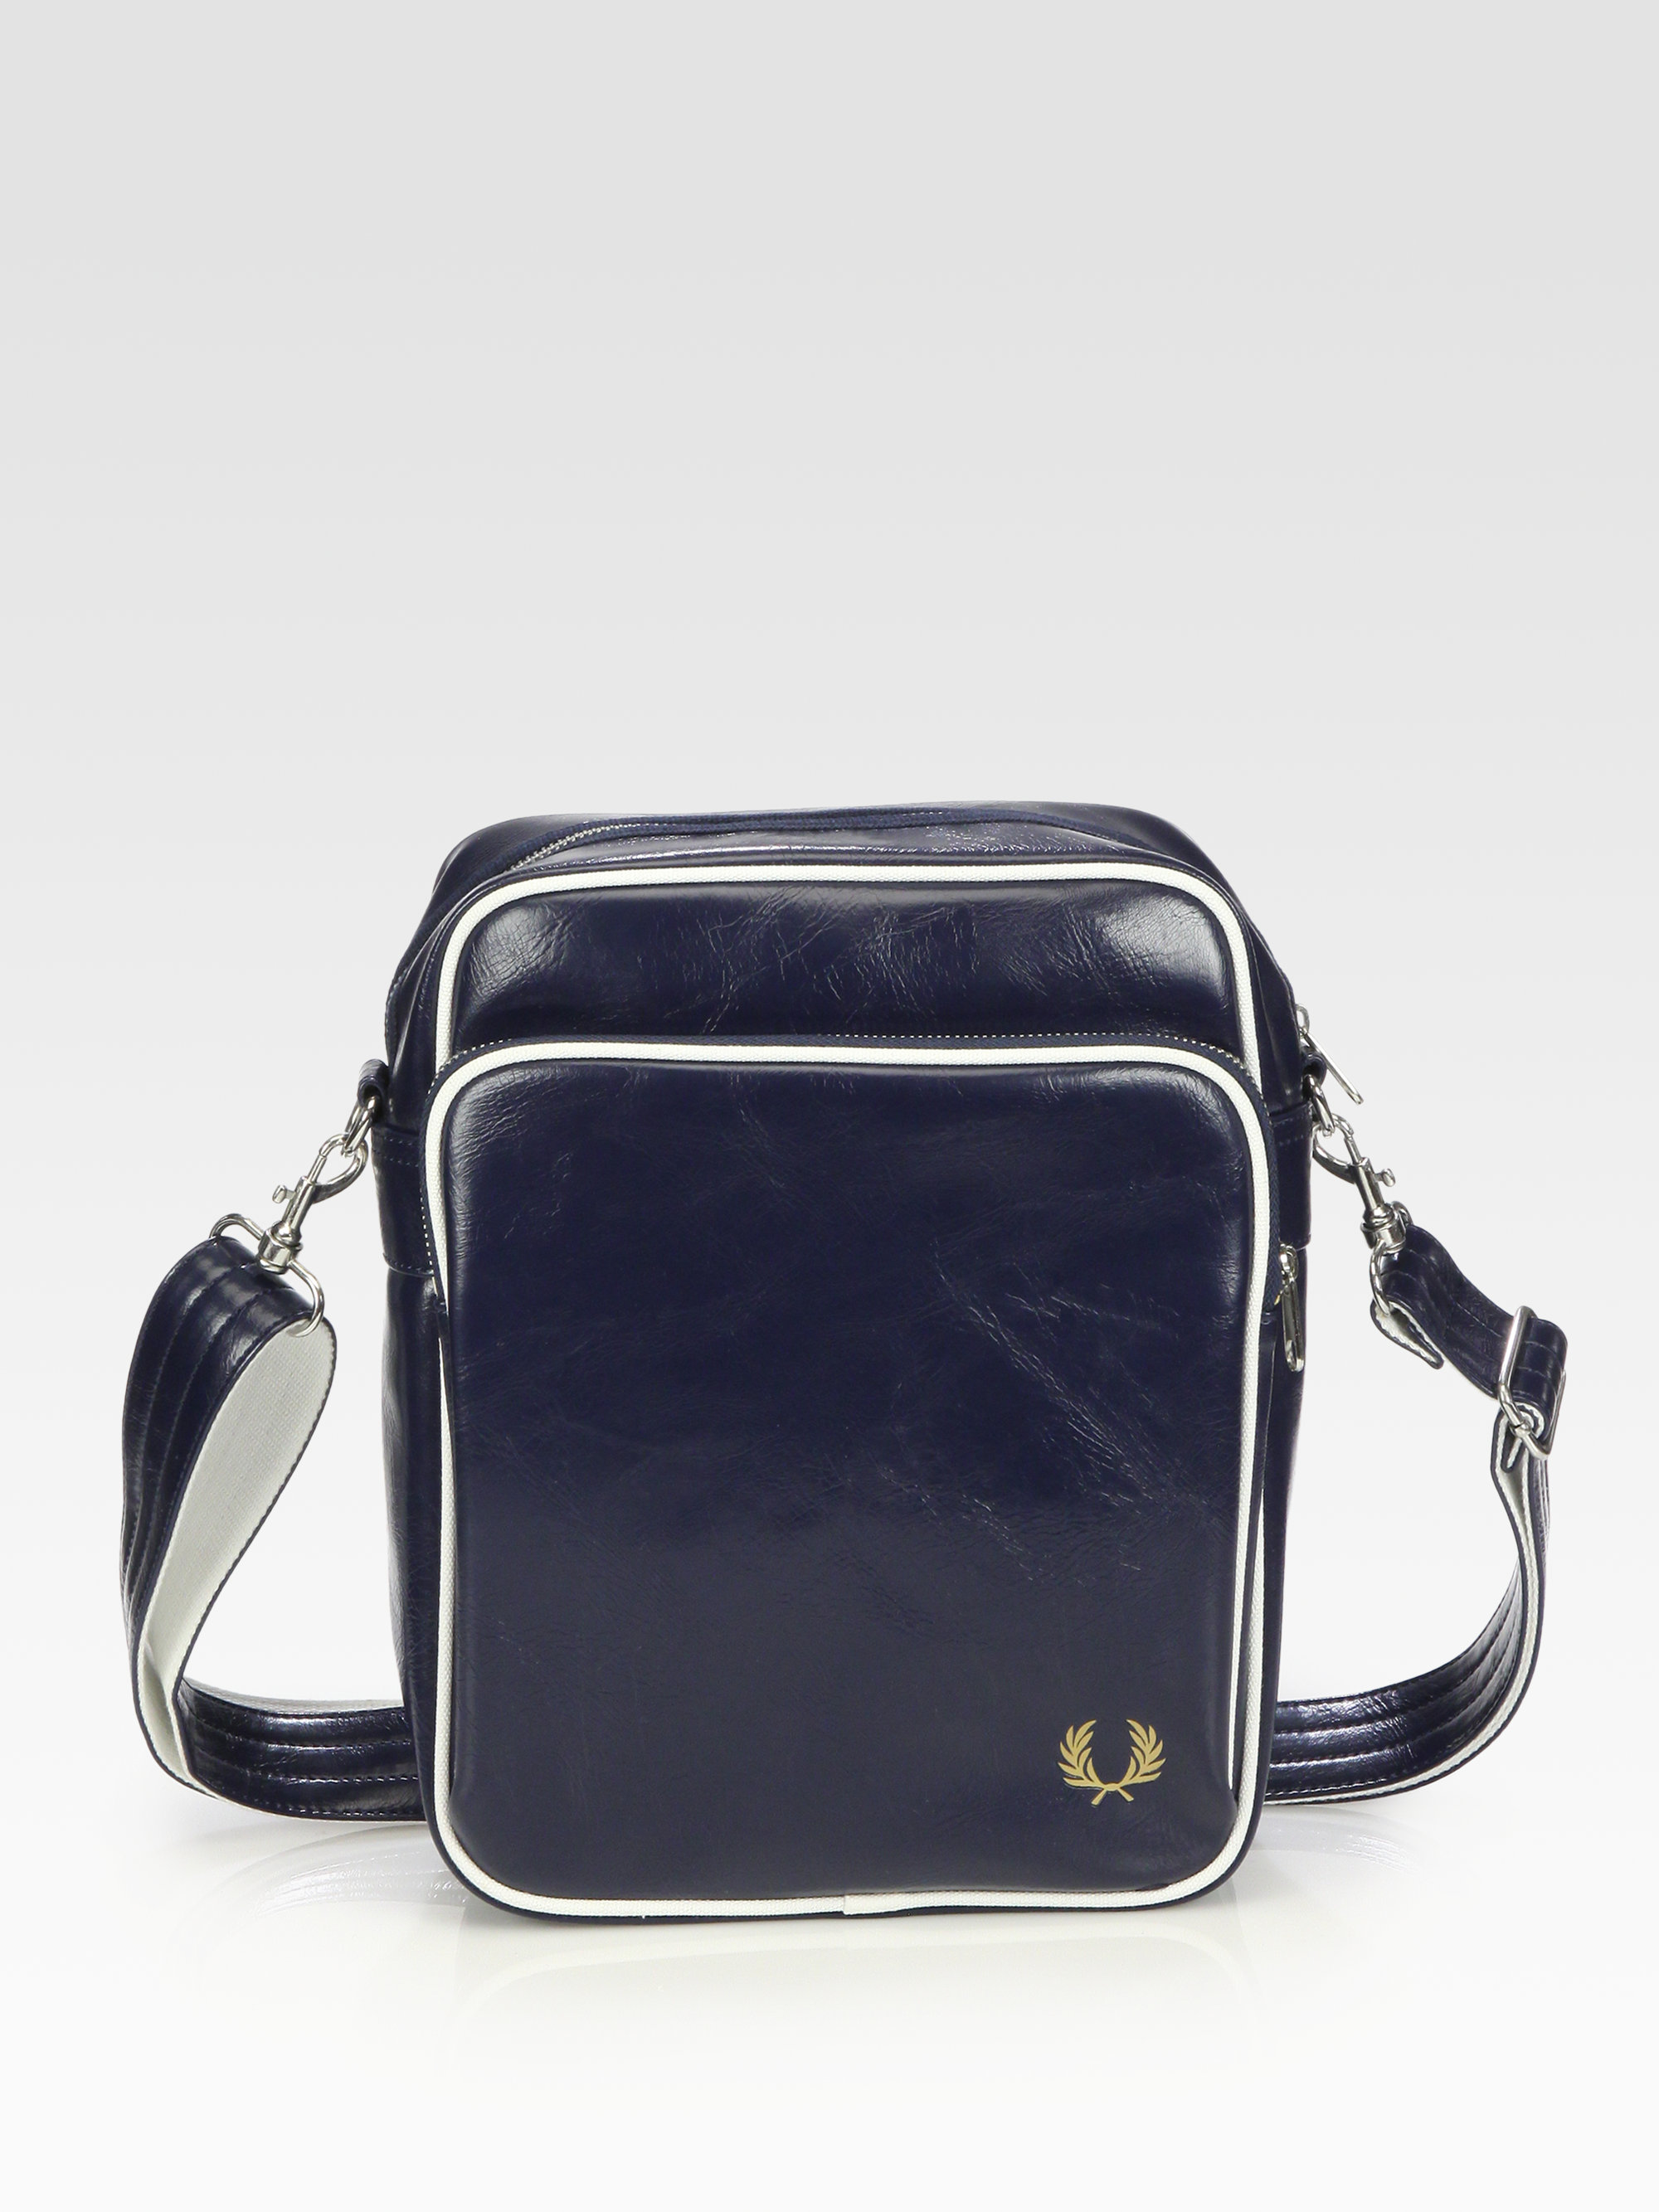 Lyst - Fred Perry Classic Side Bag in Blue for Men b5e67d6c11228